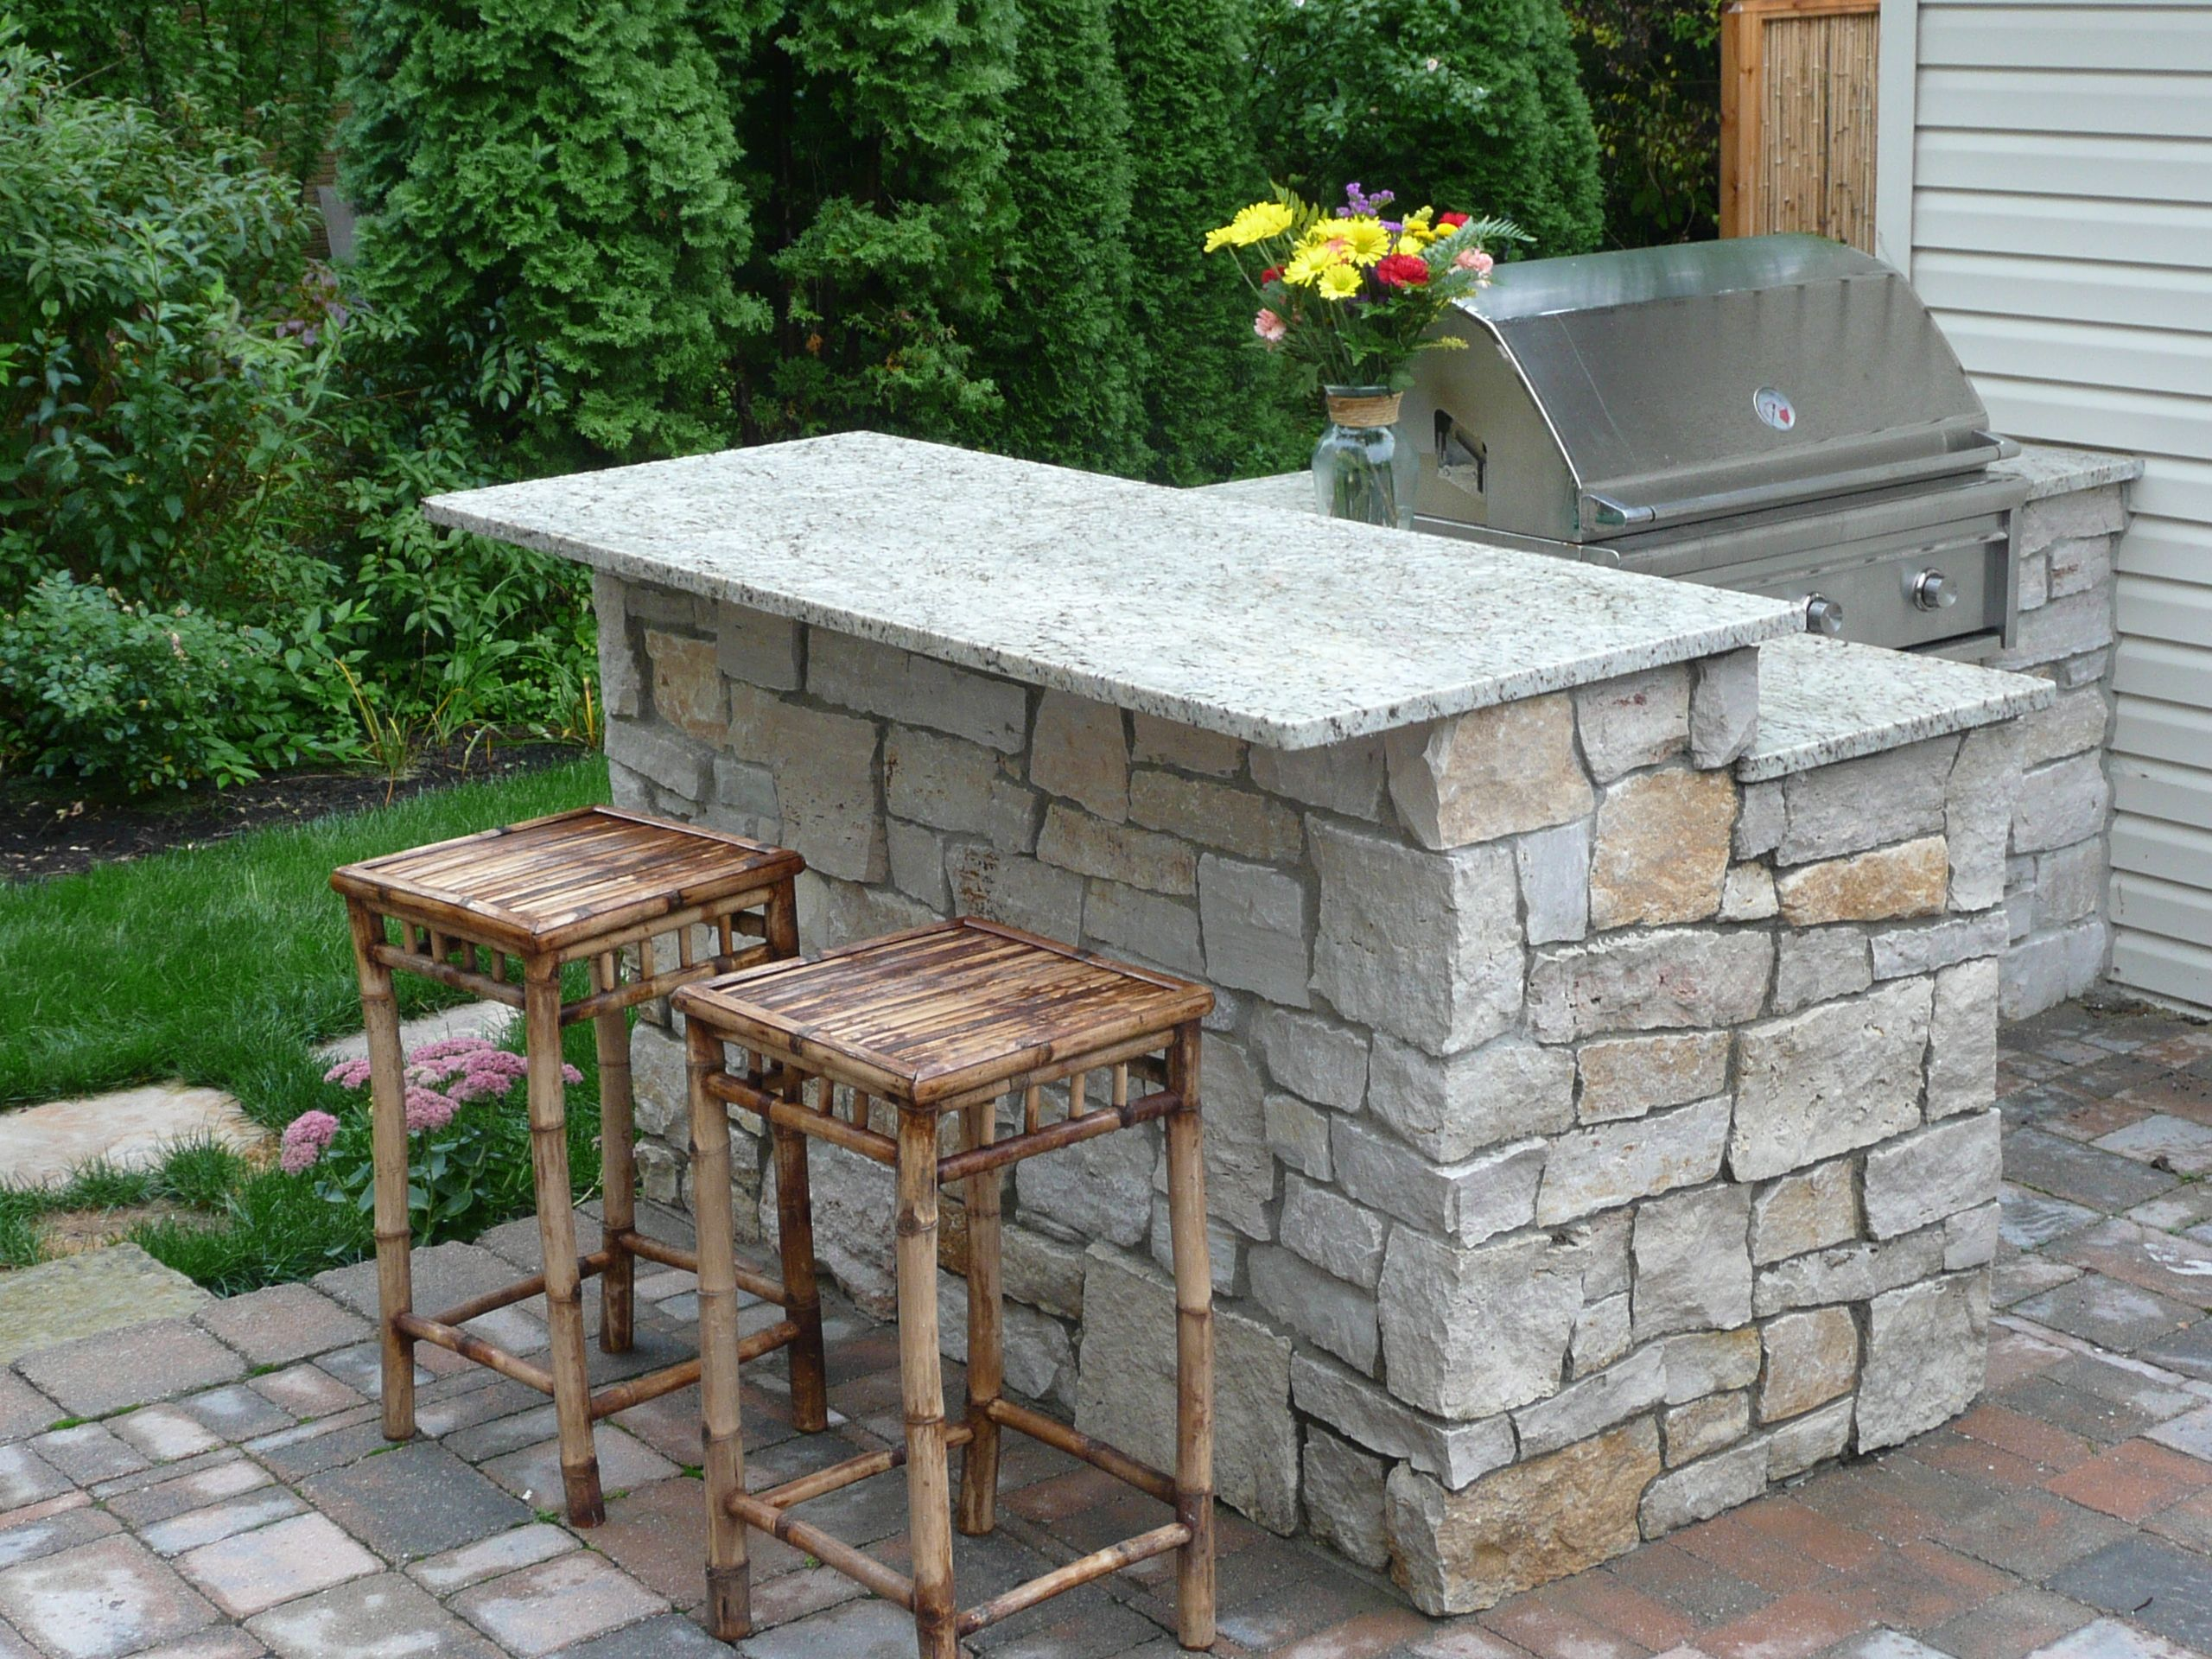 Natural Stone Bbq Stand And Cooking Area, Pull Up A